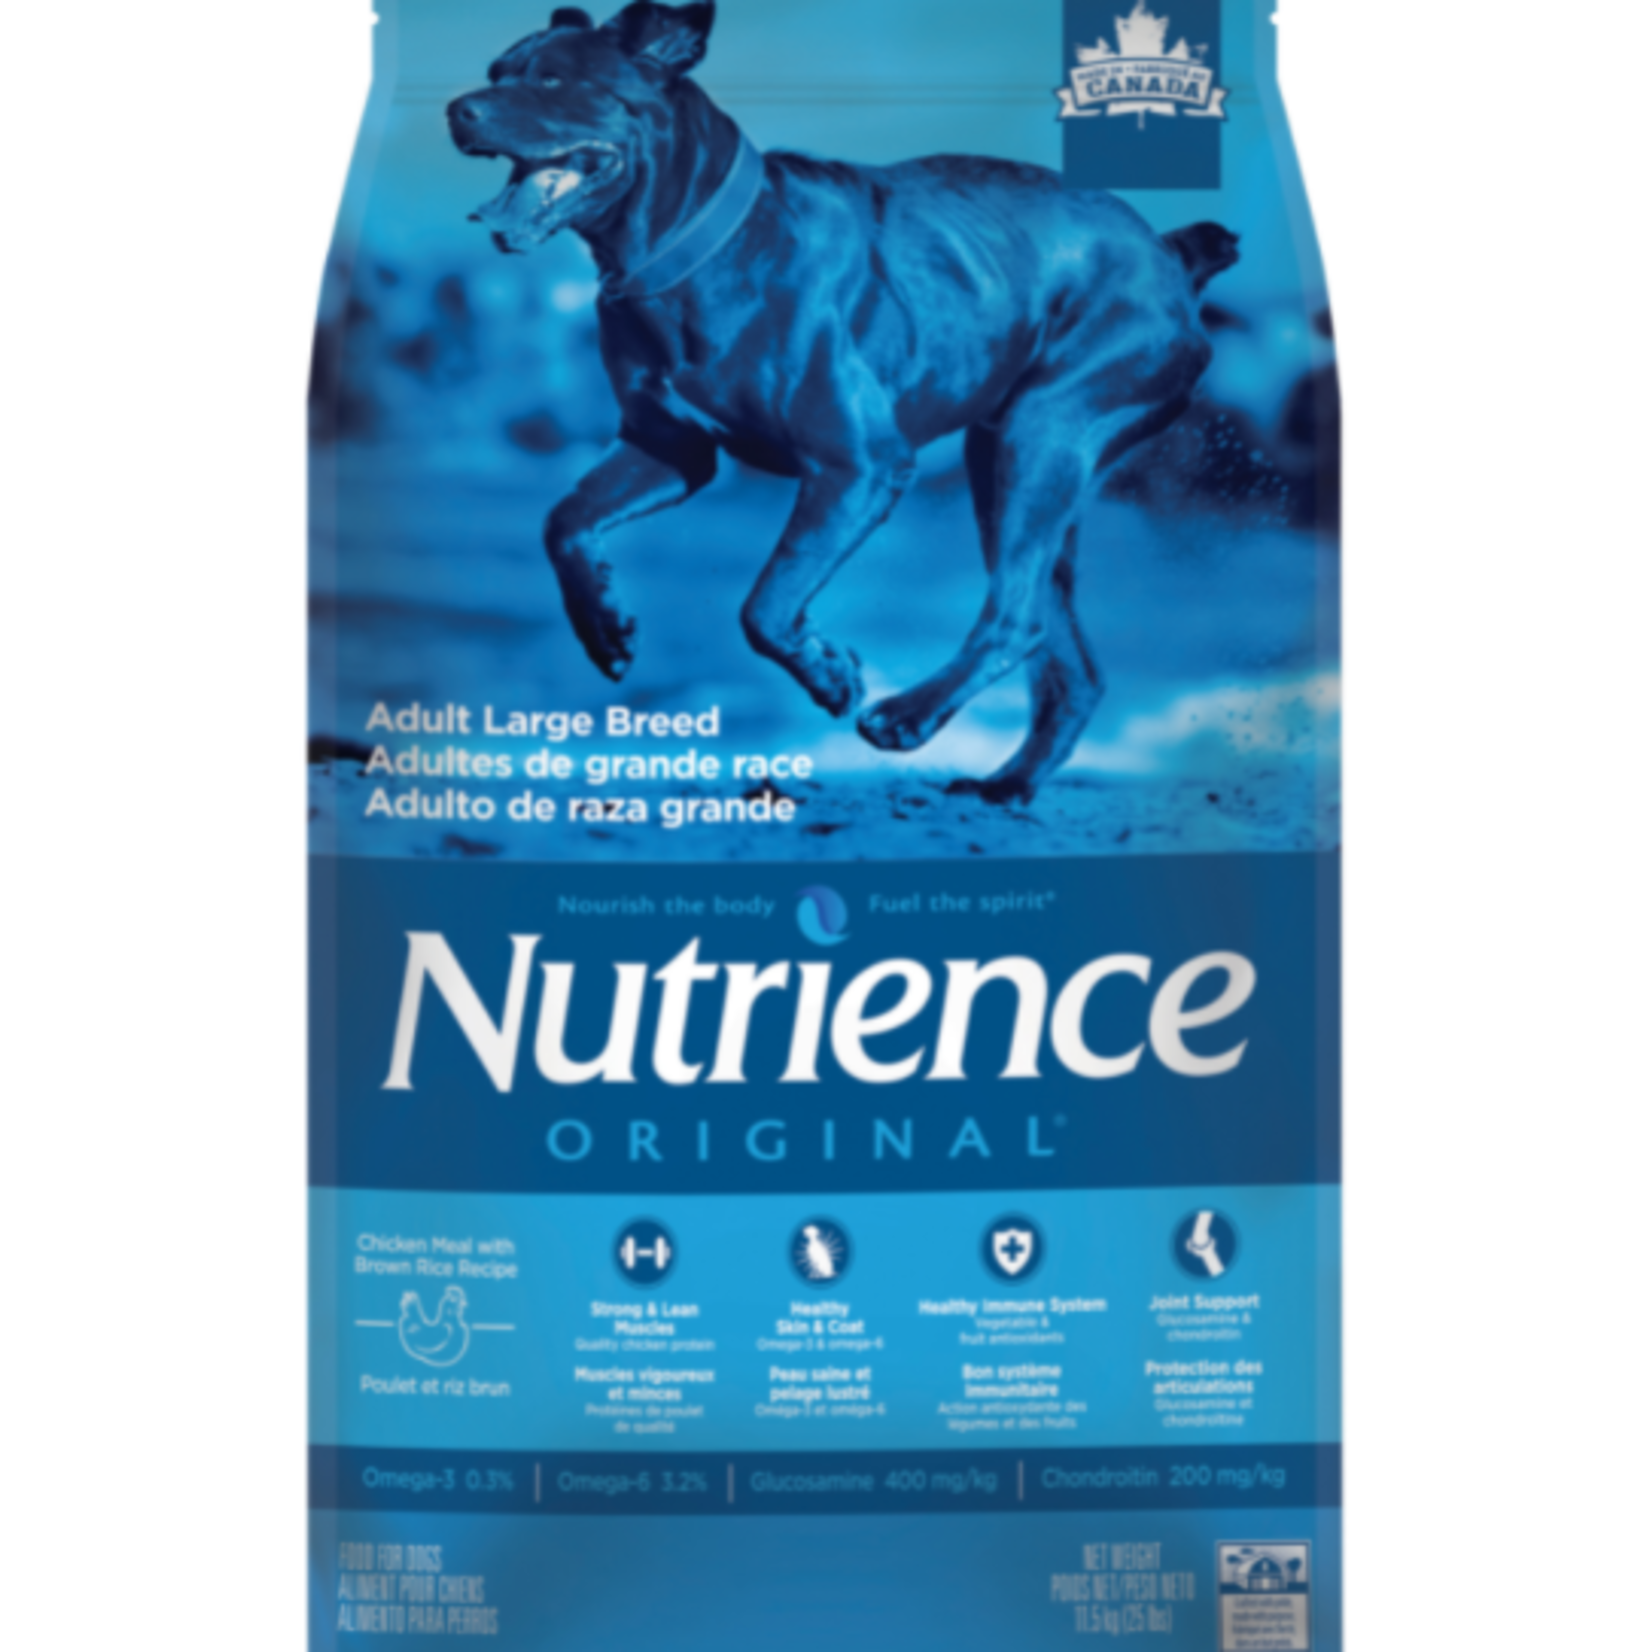 nutrience Chicken with Brown Rice - Original Large Breed - 25 lbs - Dry food